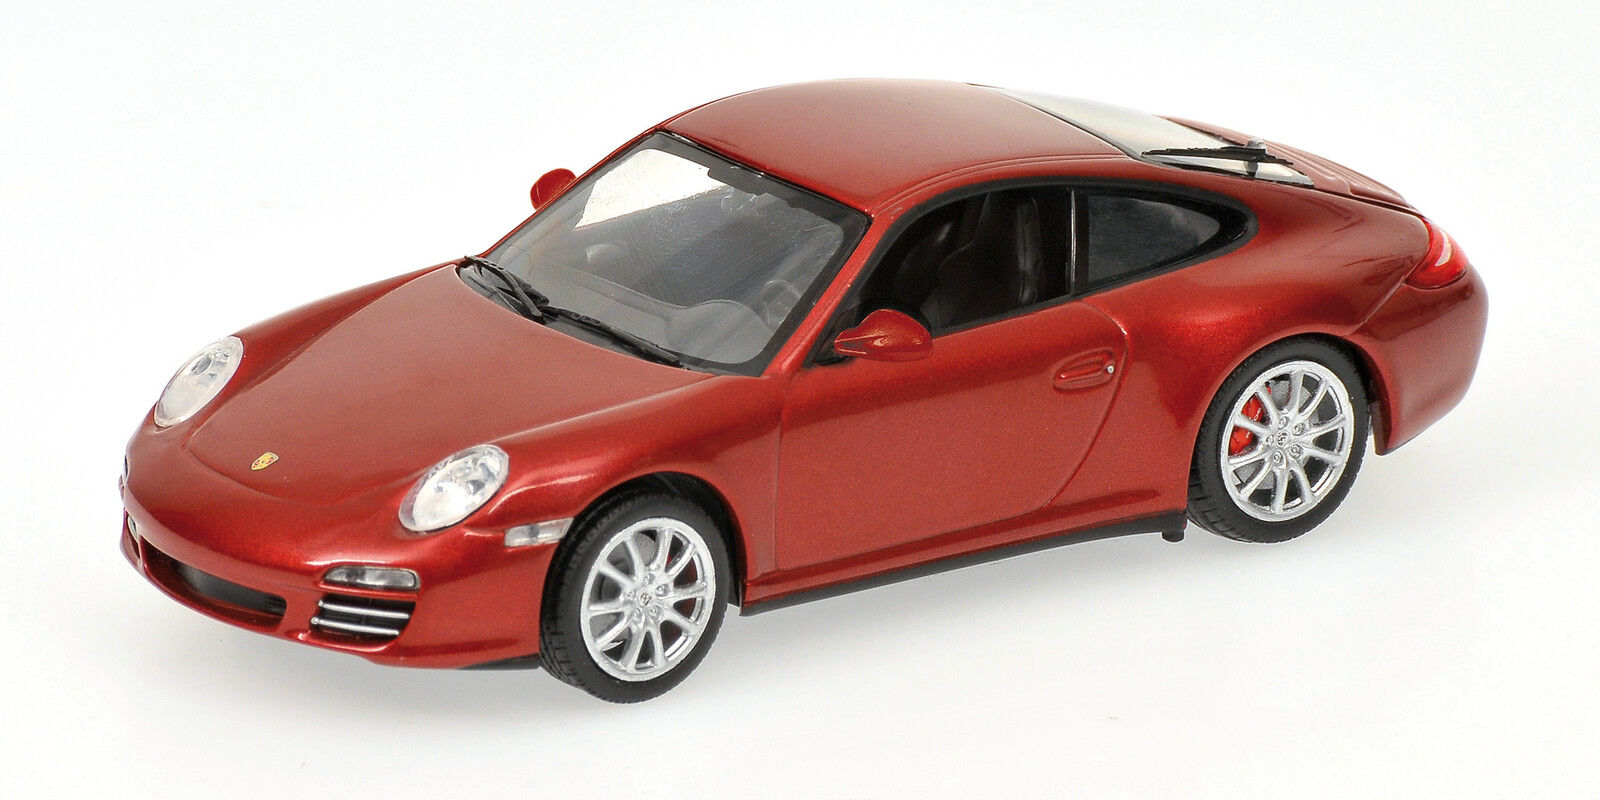 Porsche 911 Carrera 4S 2008 Red Metallic 1 43 Model MINICHAMPS